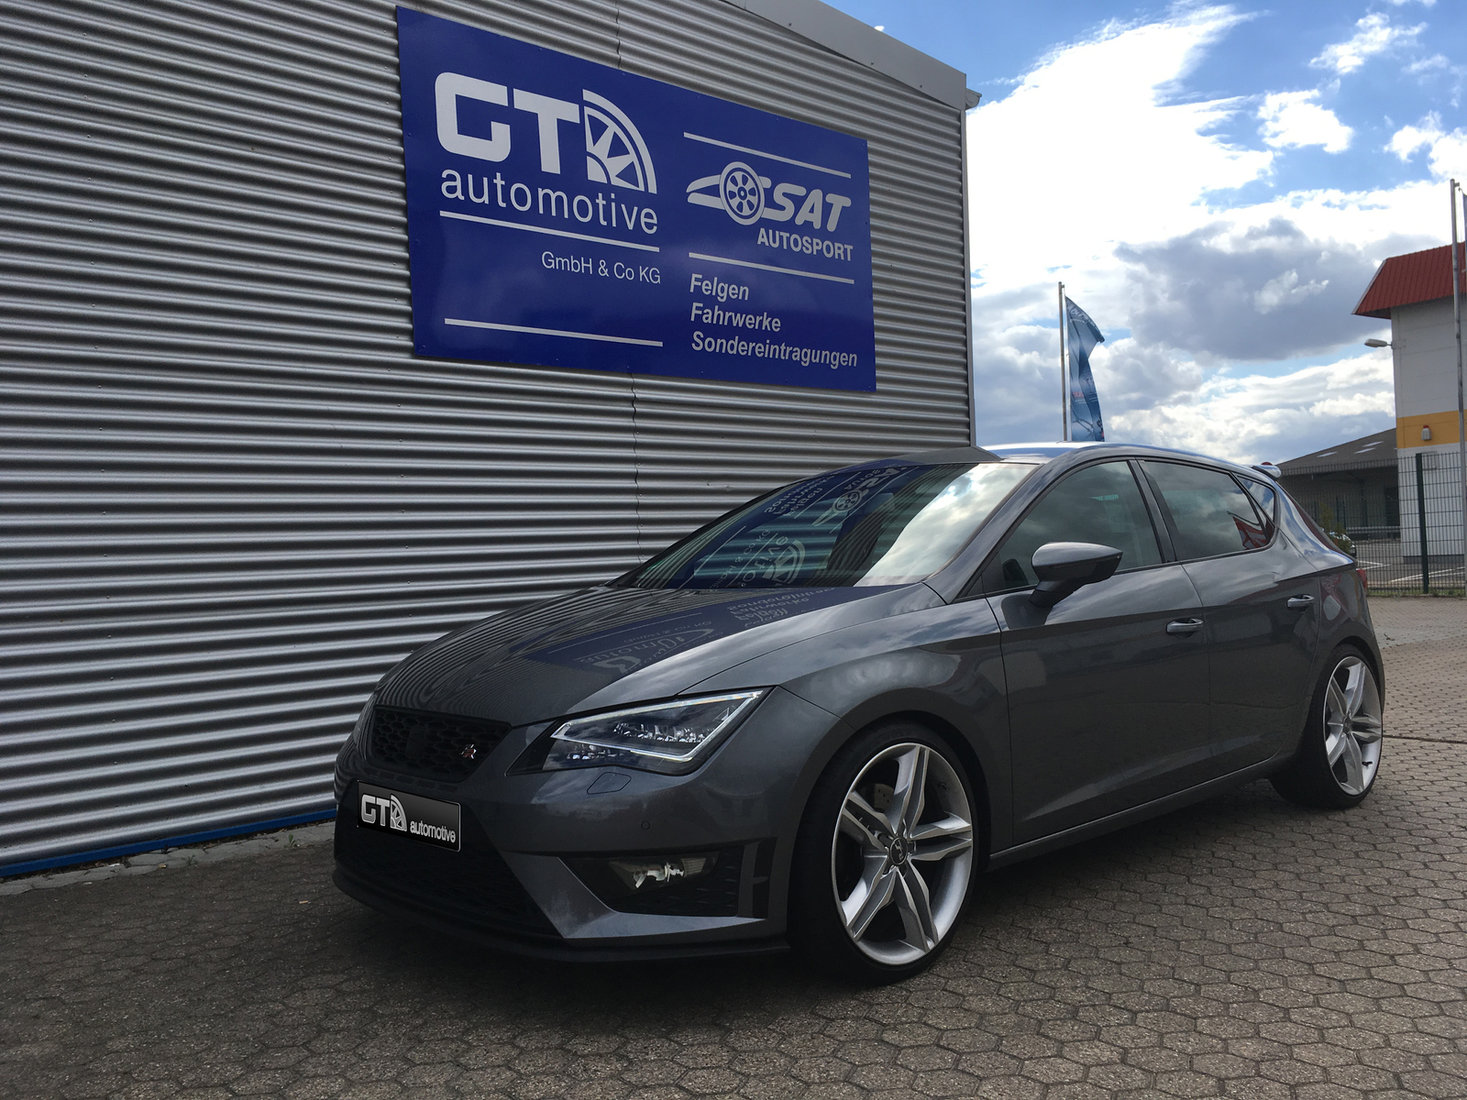 seat leon typ 5f galerie by gt automotive gmbh co kg. Black Bedroom Furniture Sets. Home Design Ideas